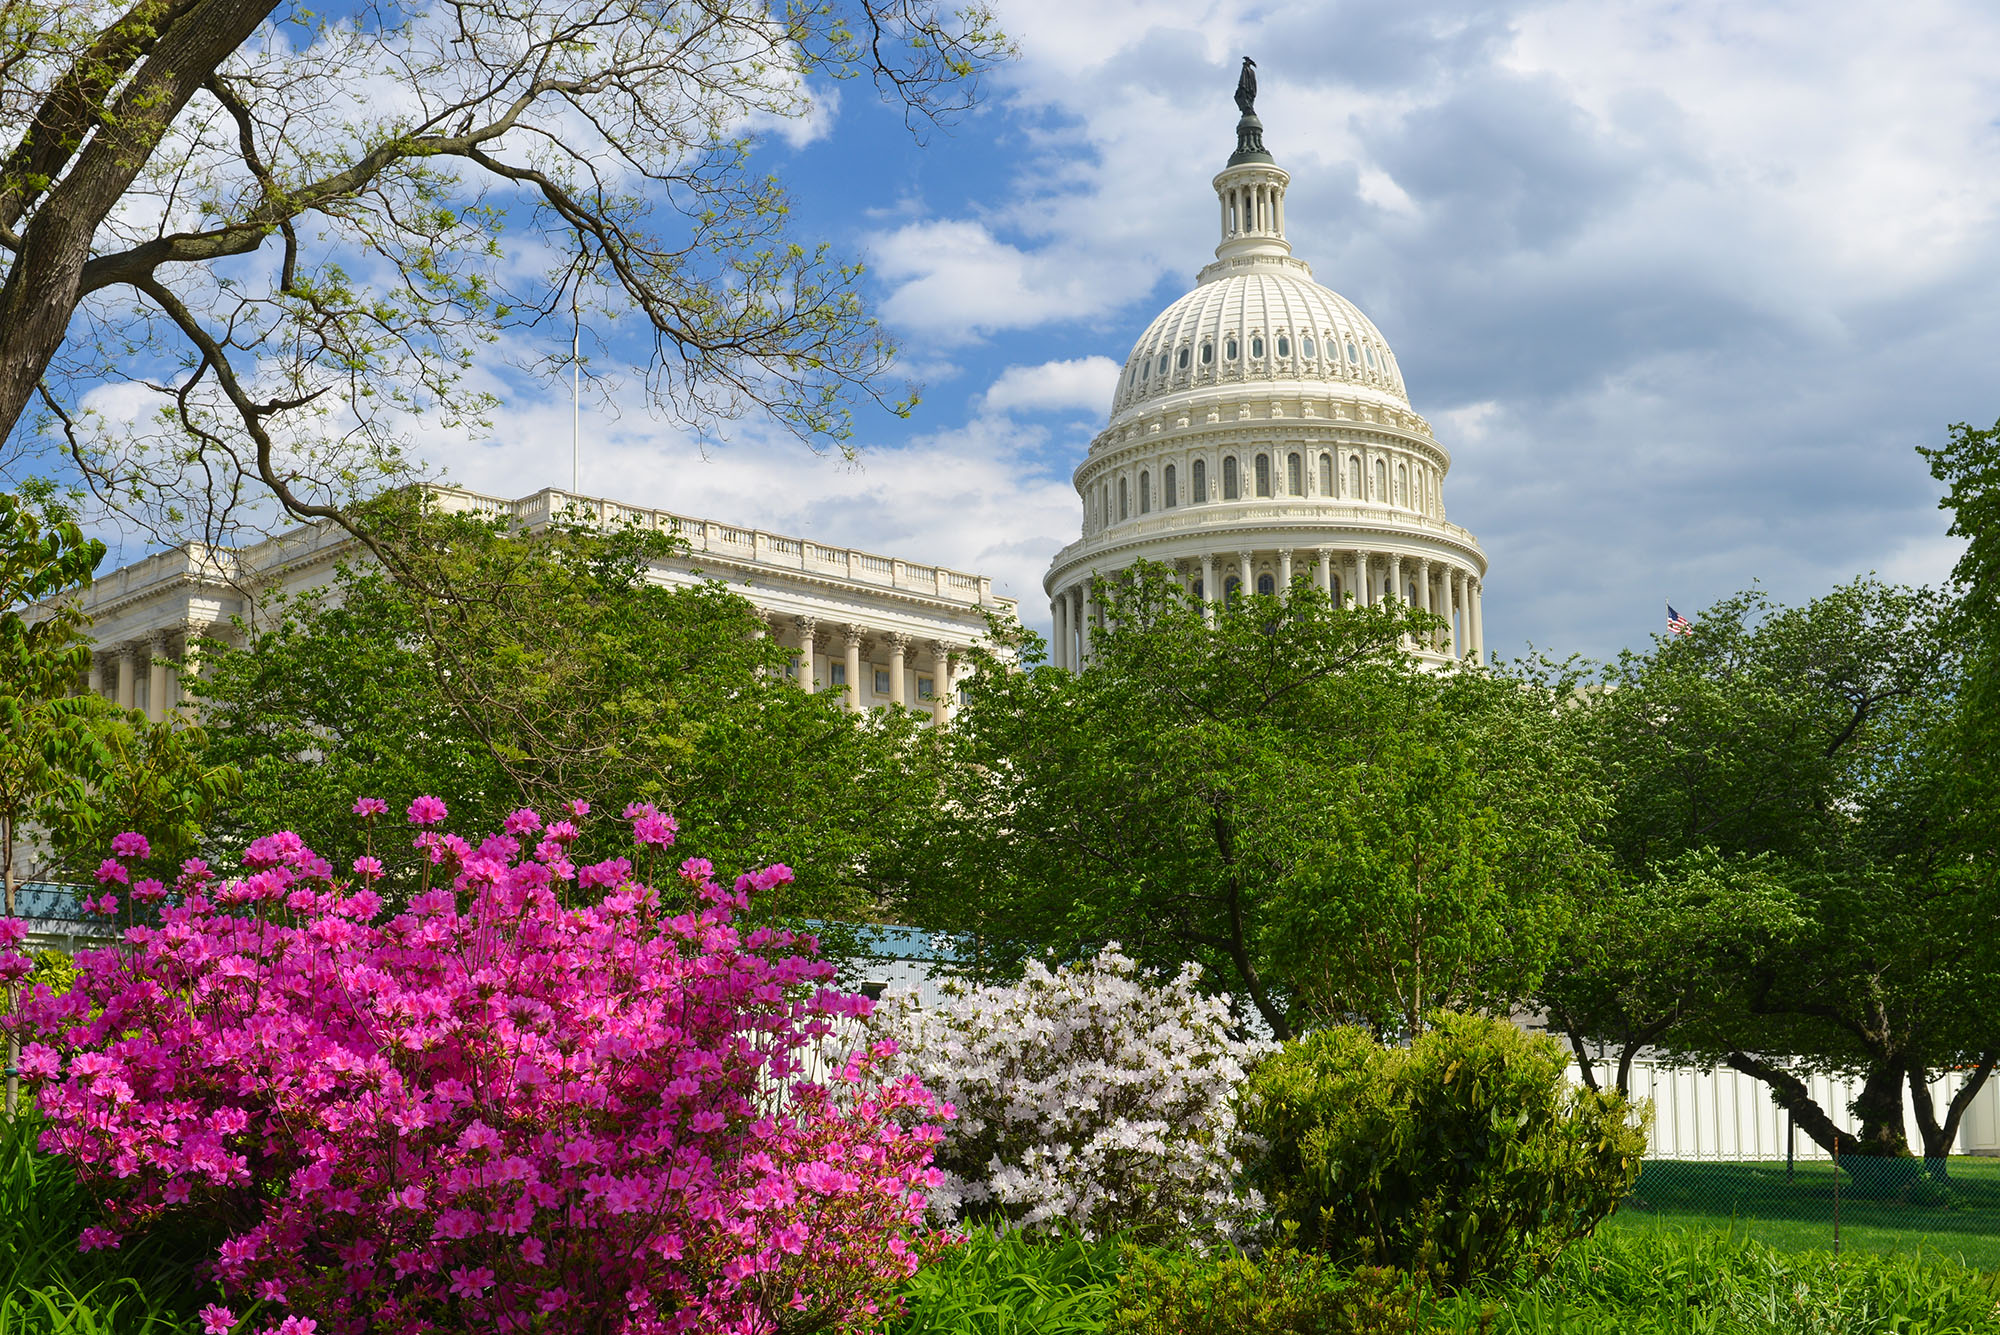 The Capitol building behind green trees and purple and white flowering bushes